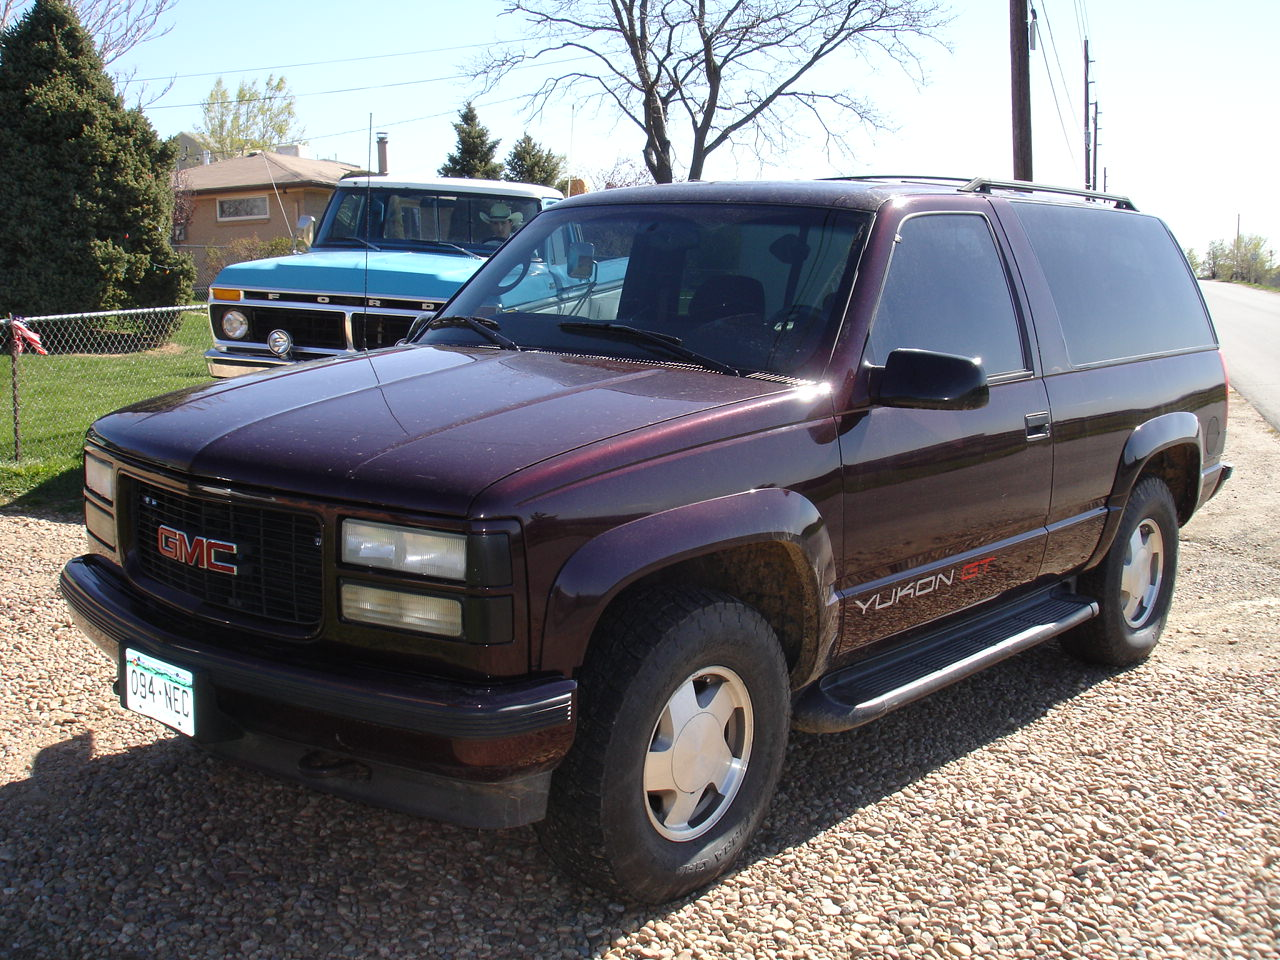 Picture of 1996 GMC Yukon